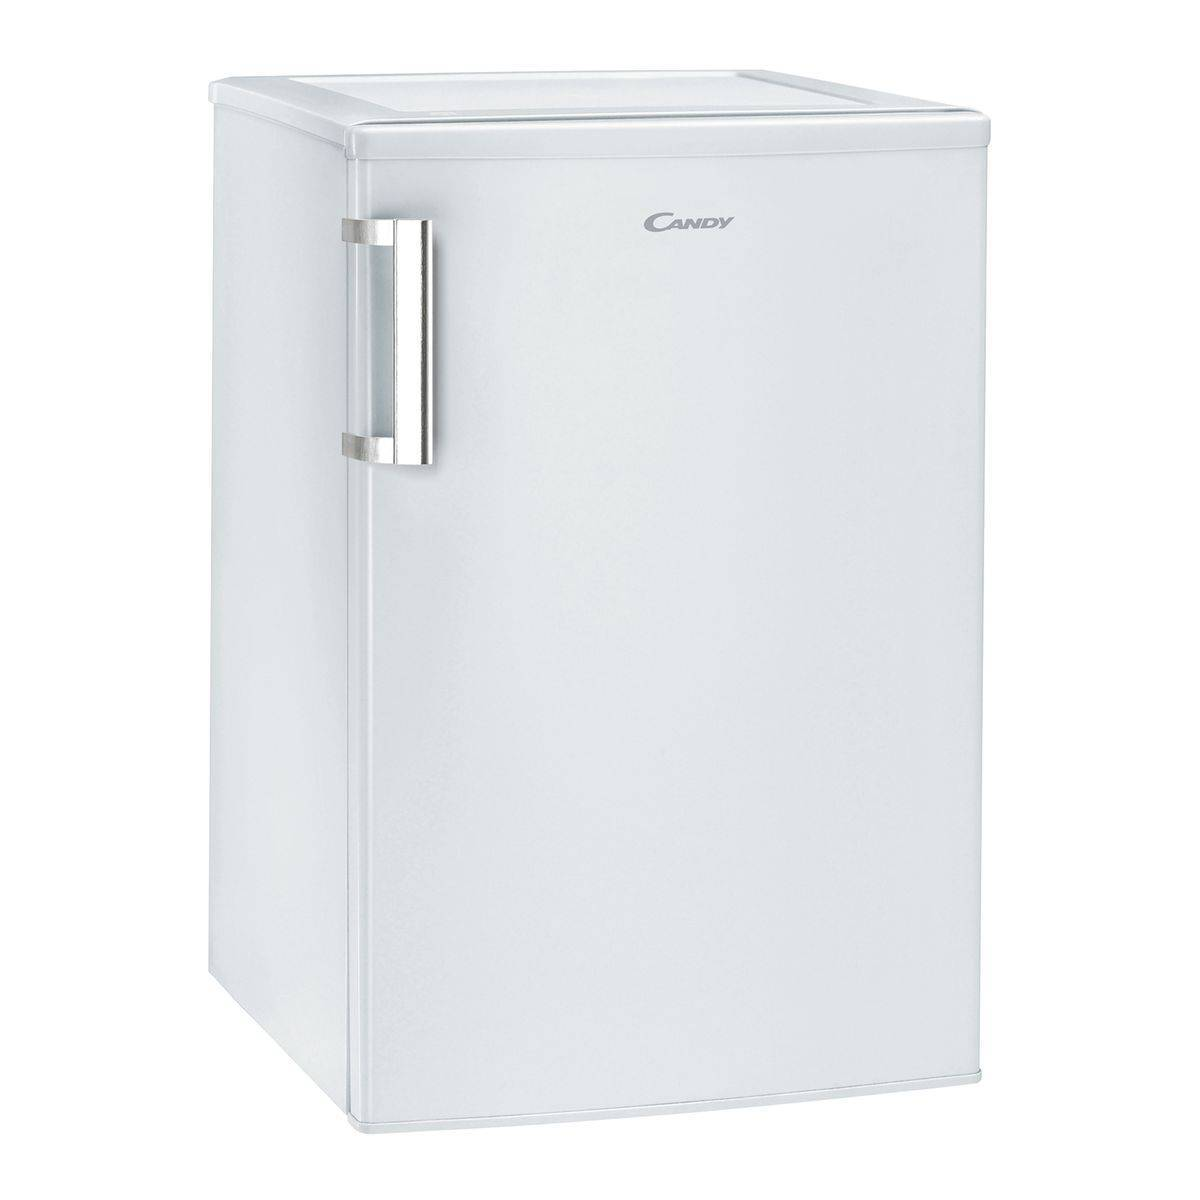 Candy Congélateur armoire CANDY CCTUS542WH - CANDY